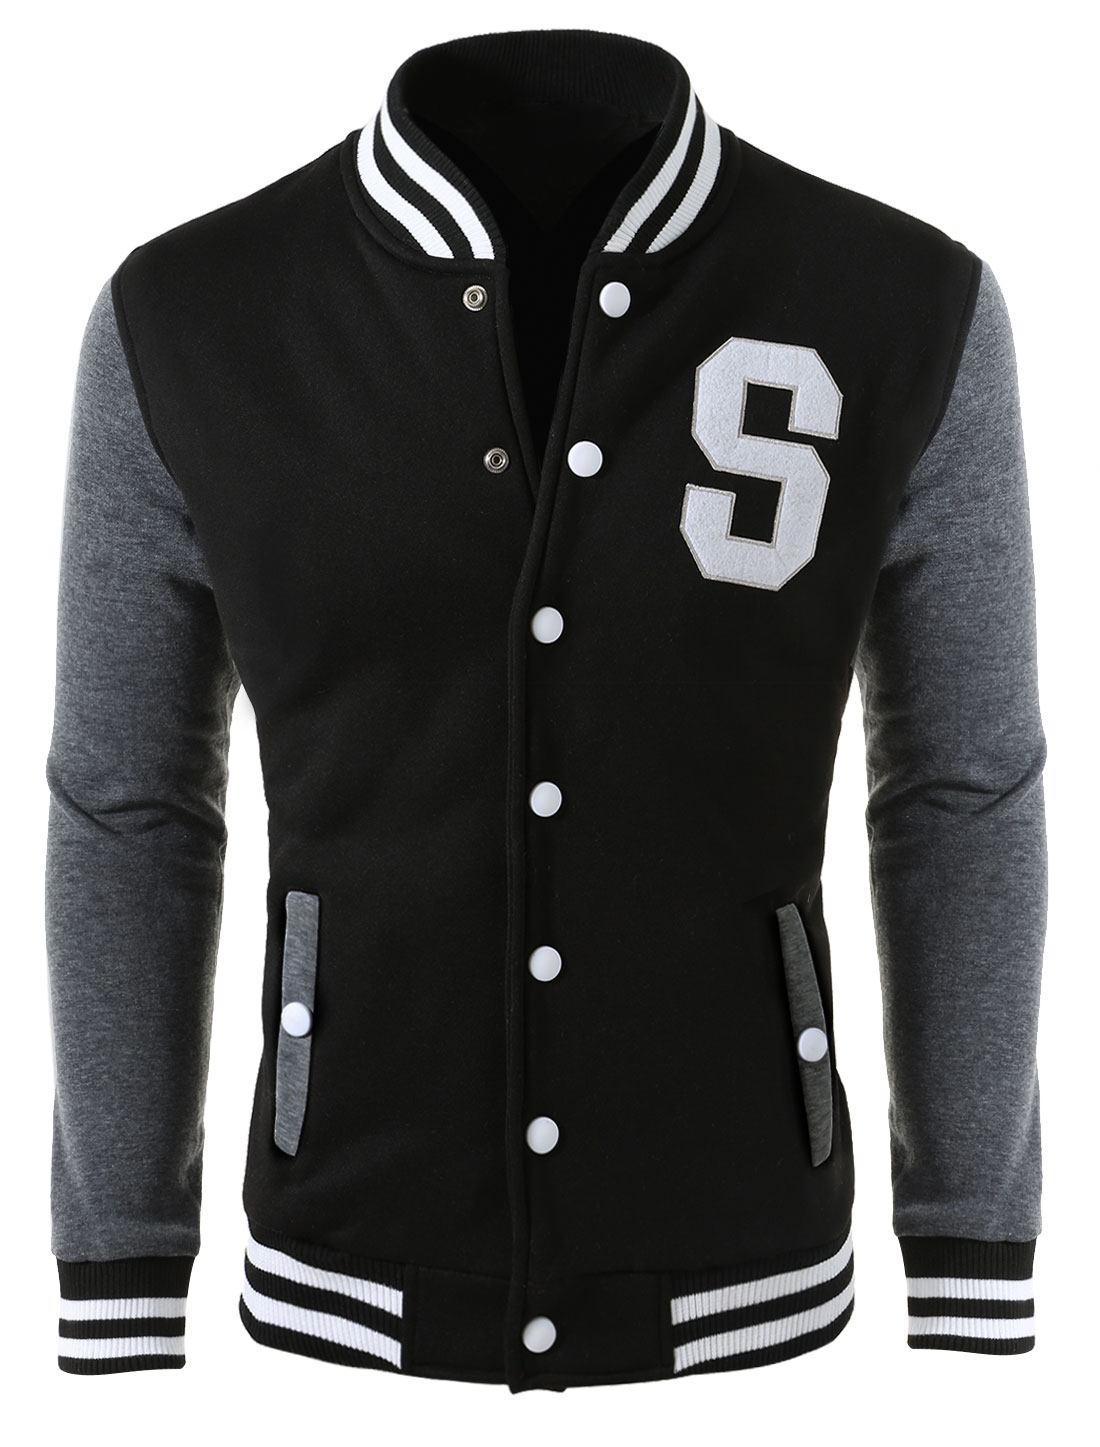 Men Stand Collar Long Sleeve Pockets Baseball Jacket Black L